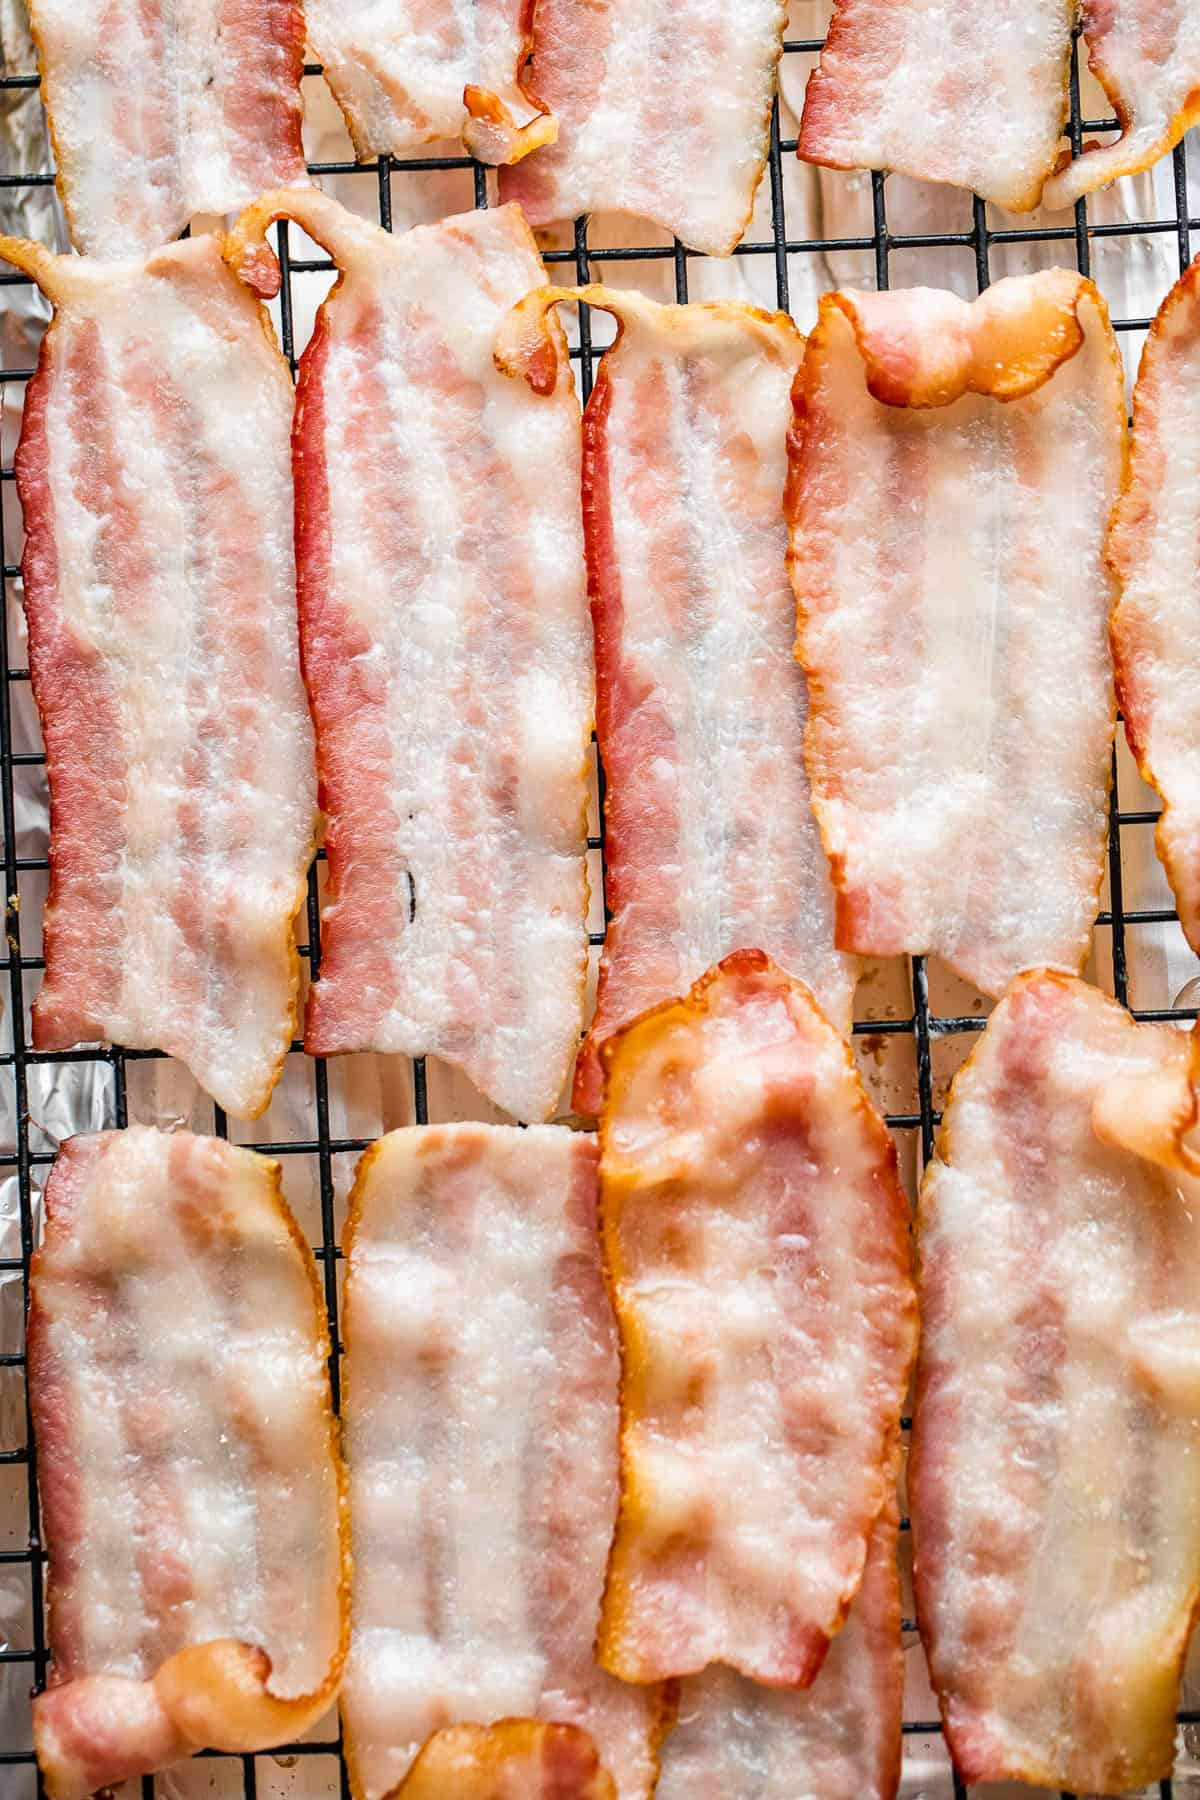 bacon slices arranged on top of baking rack